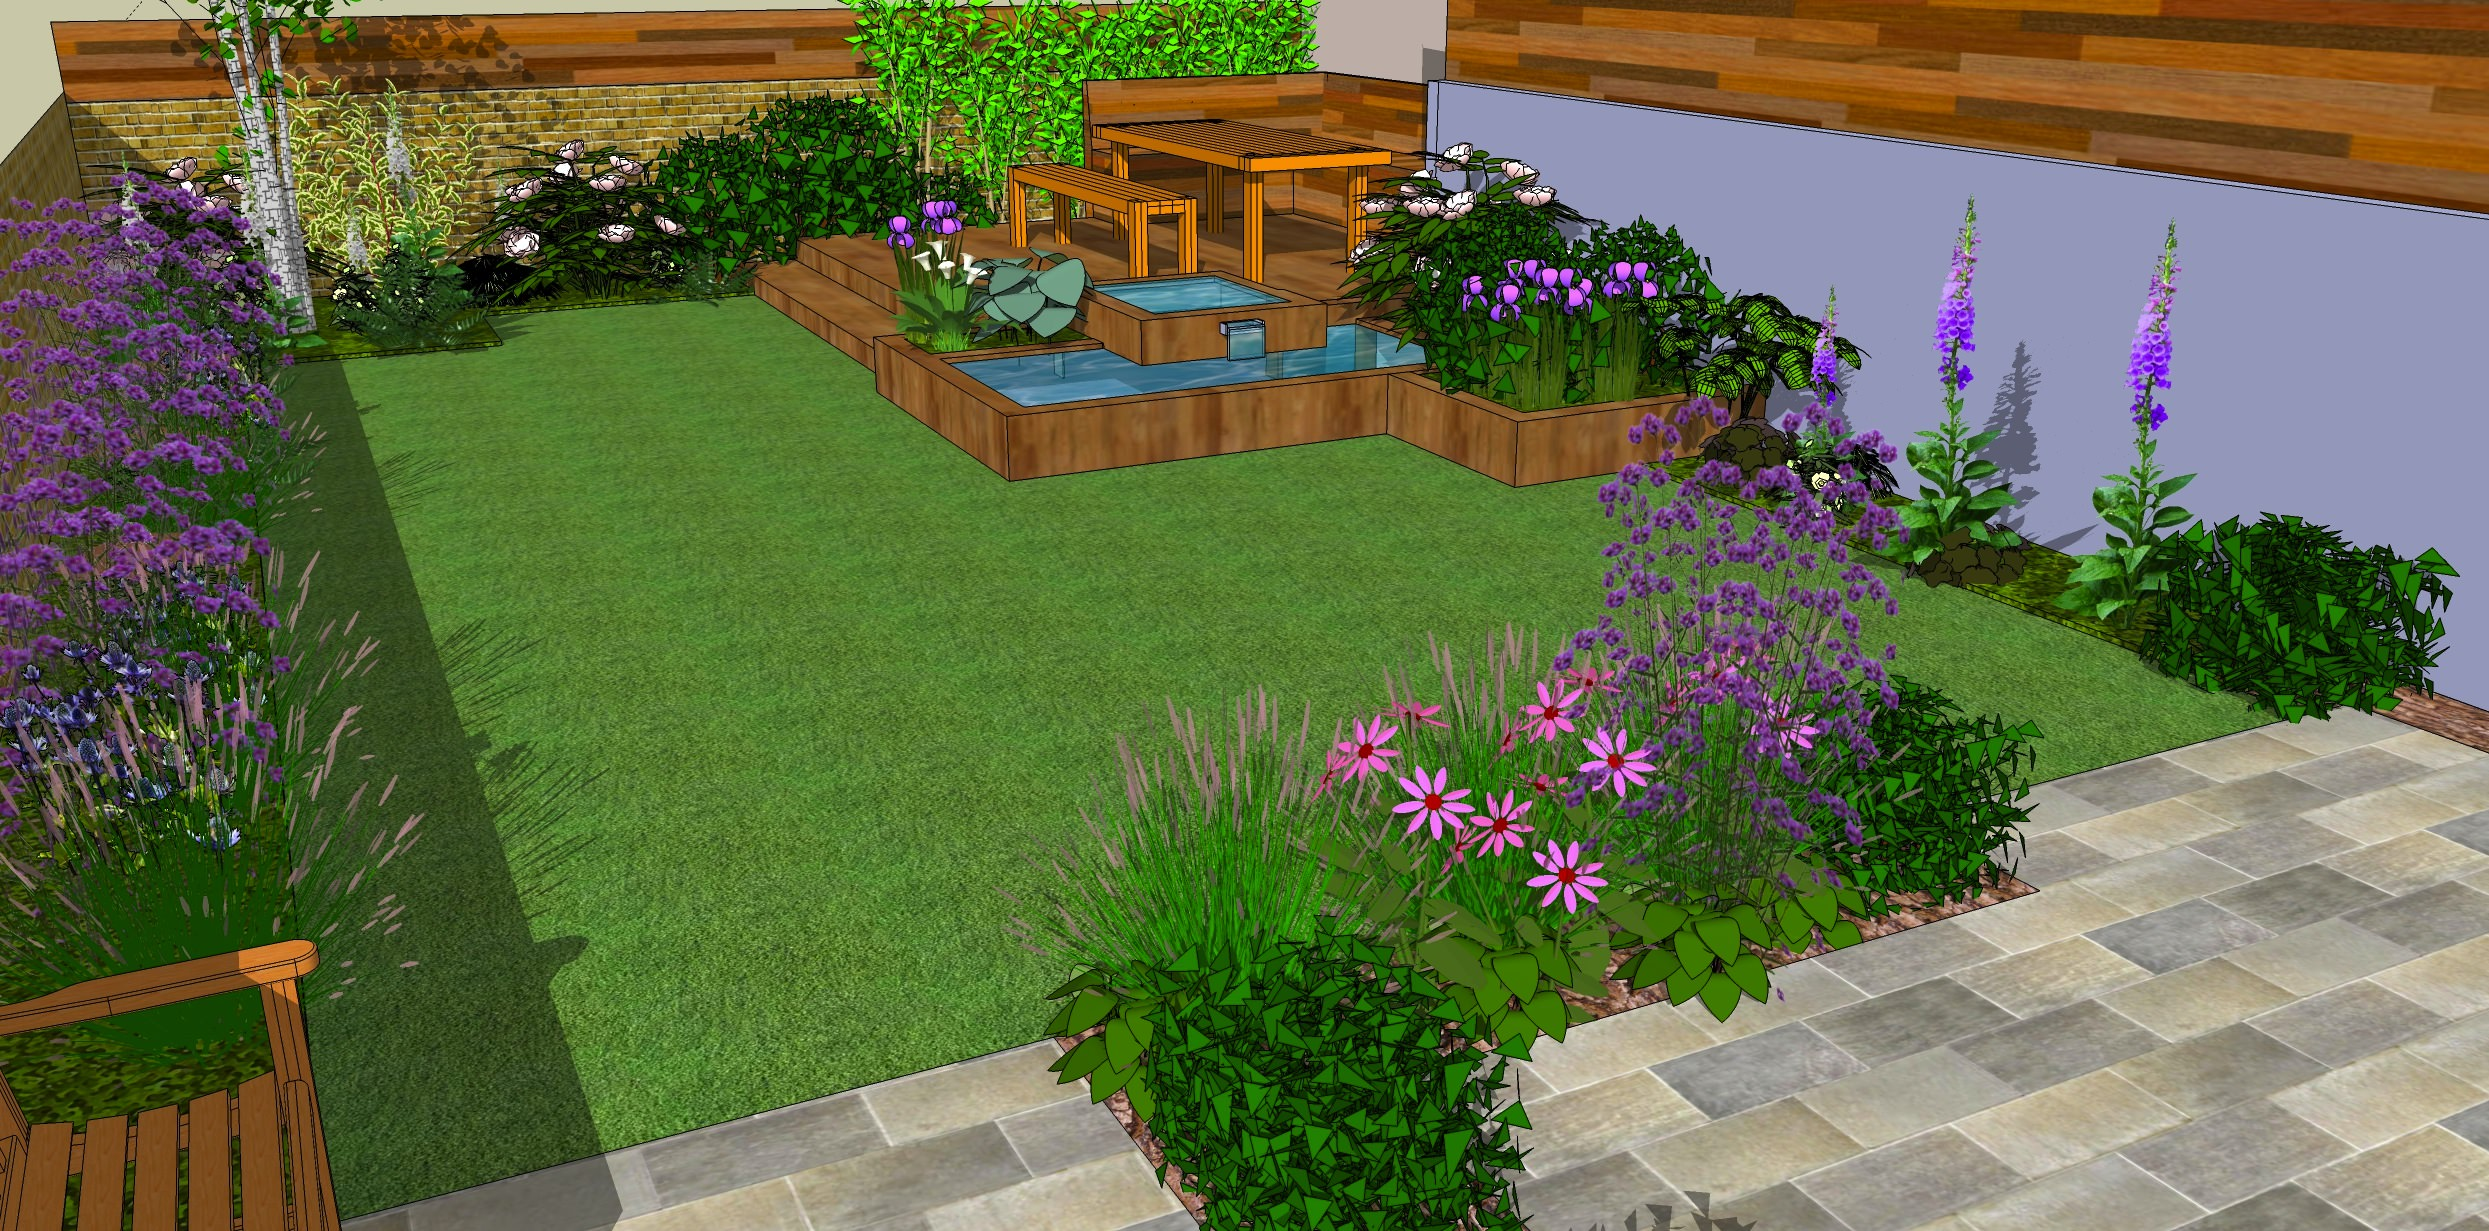 Low maintenance garden designs garden club london for Back garden simple designs